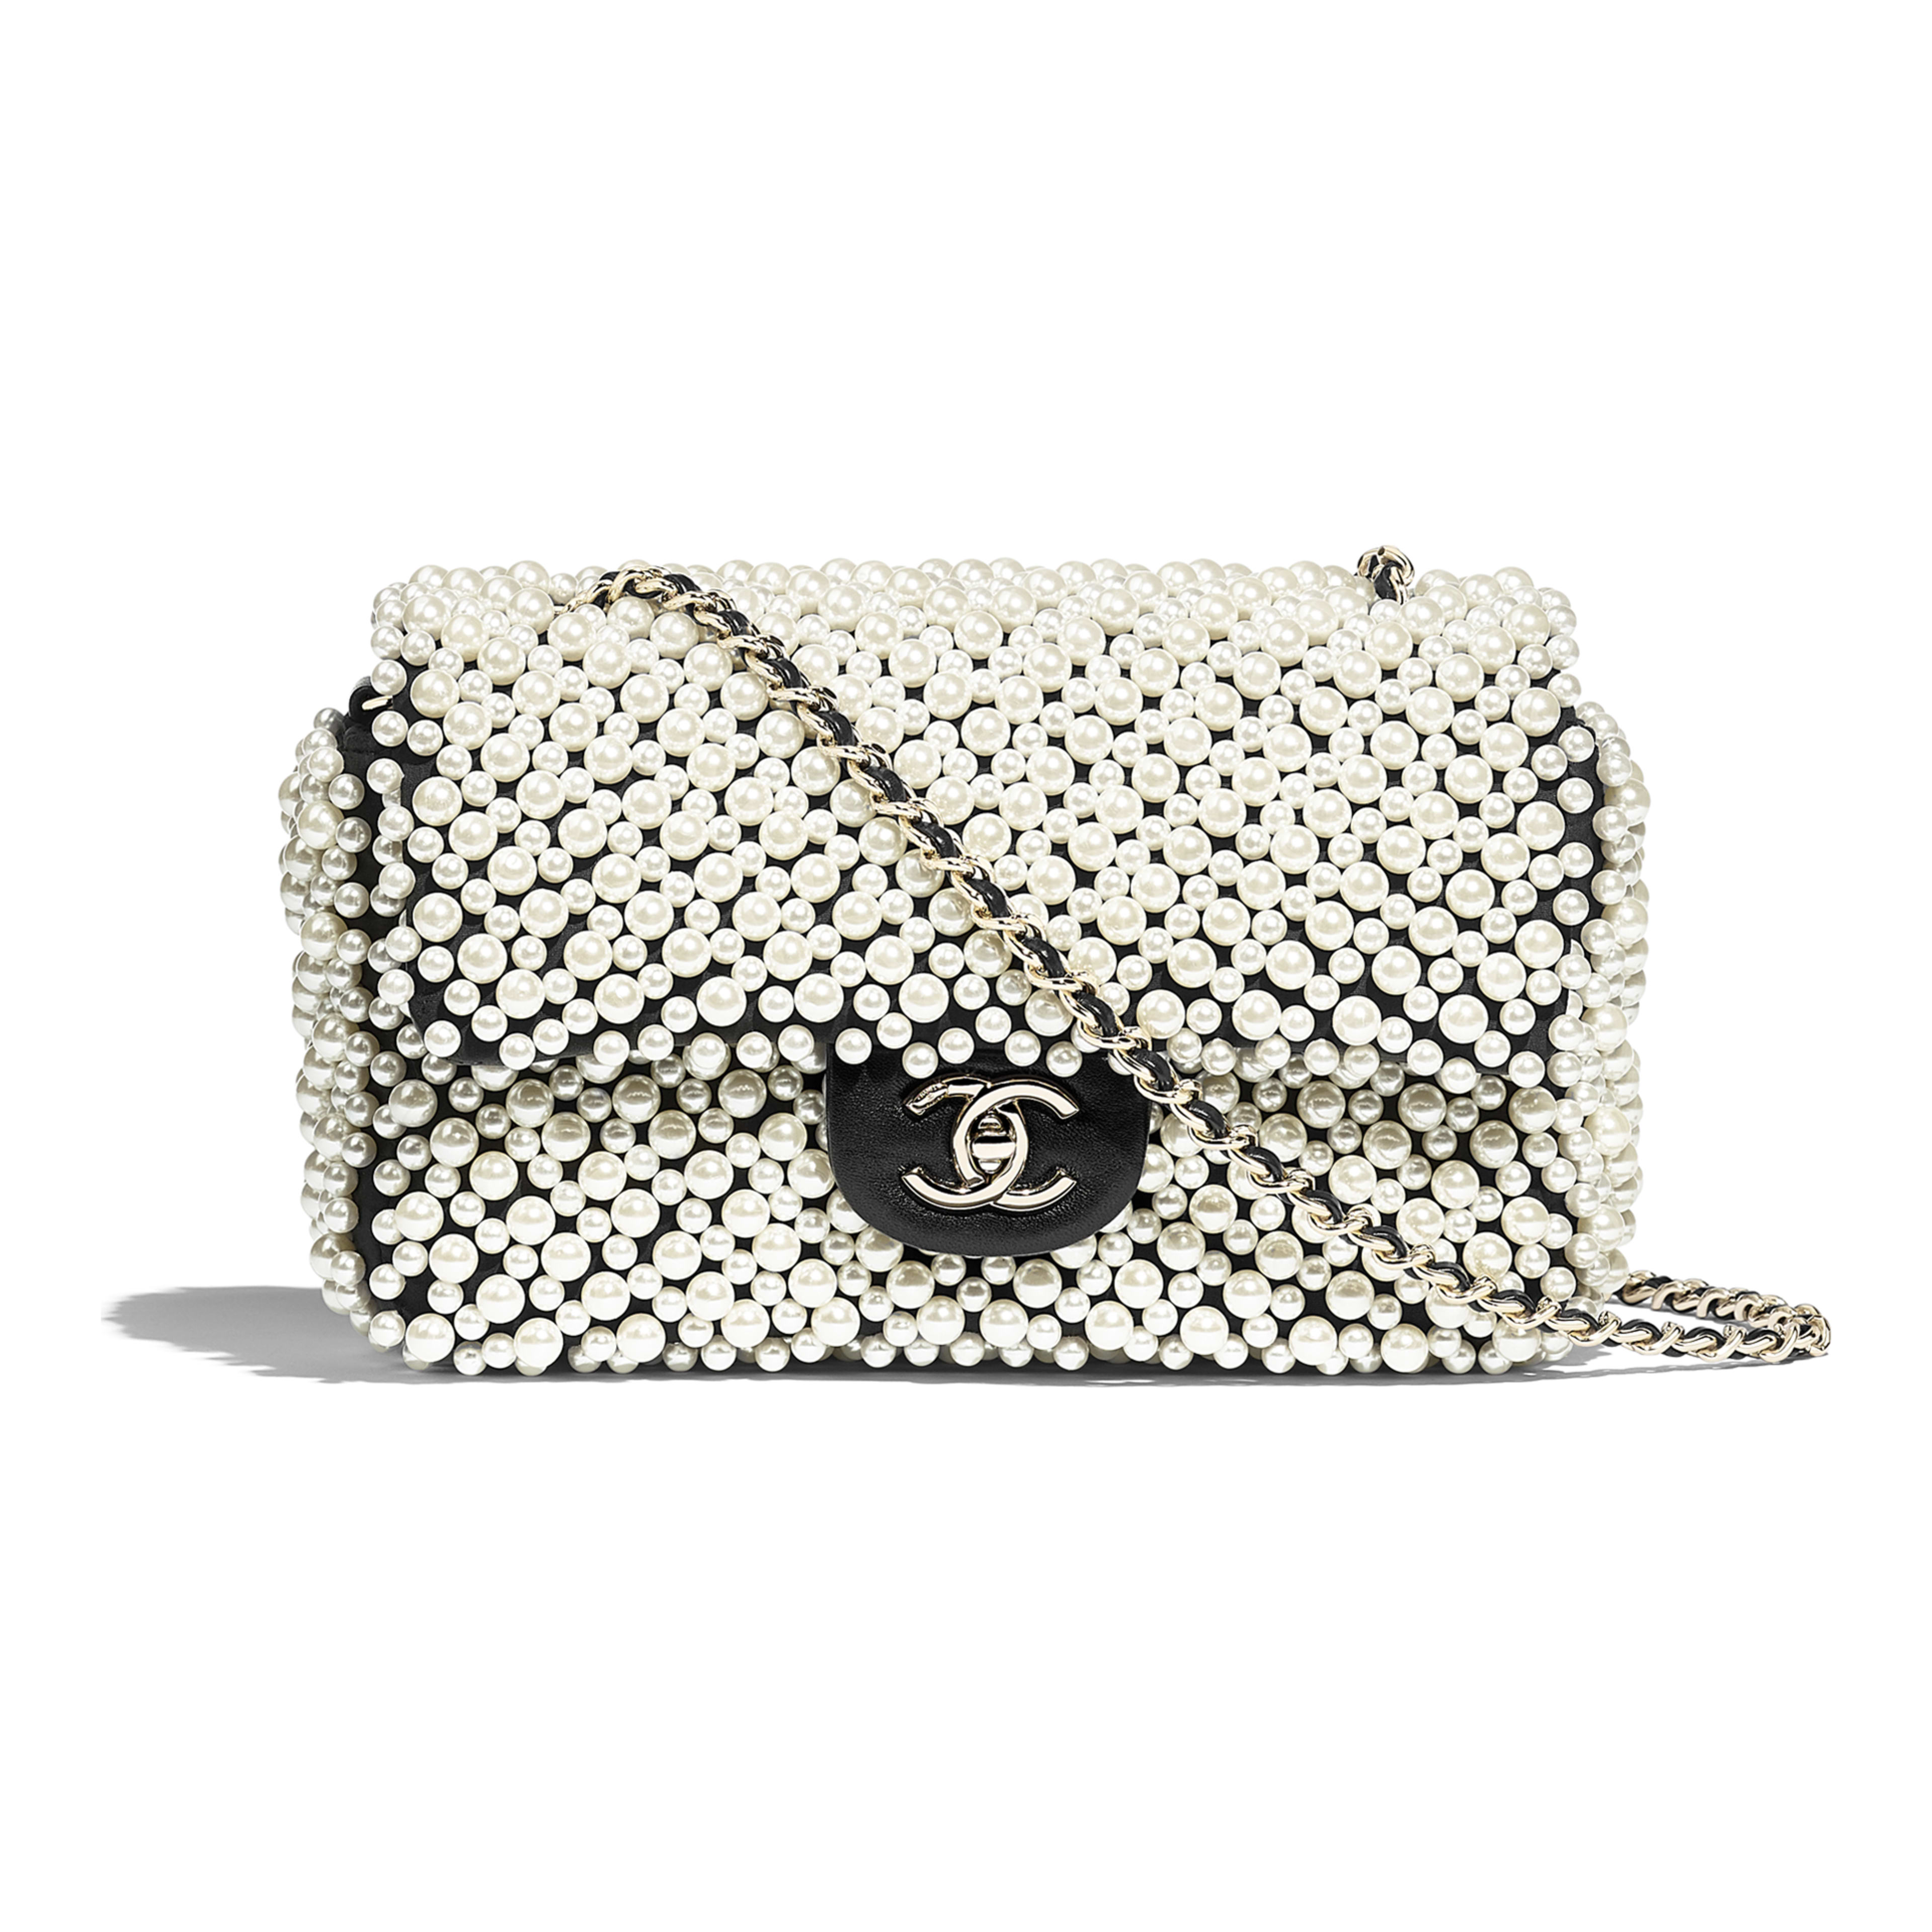 Chanel Pearl Flap Bag